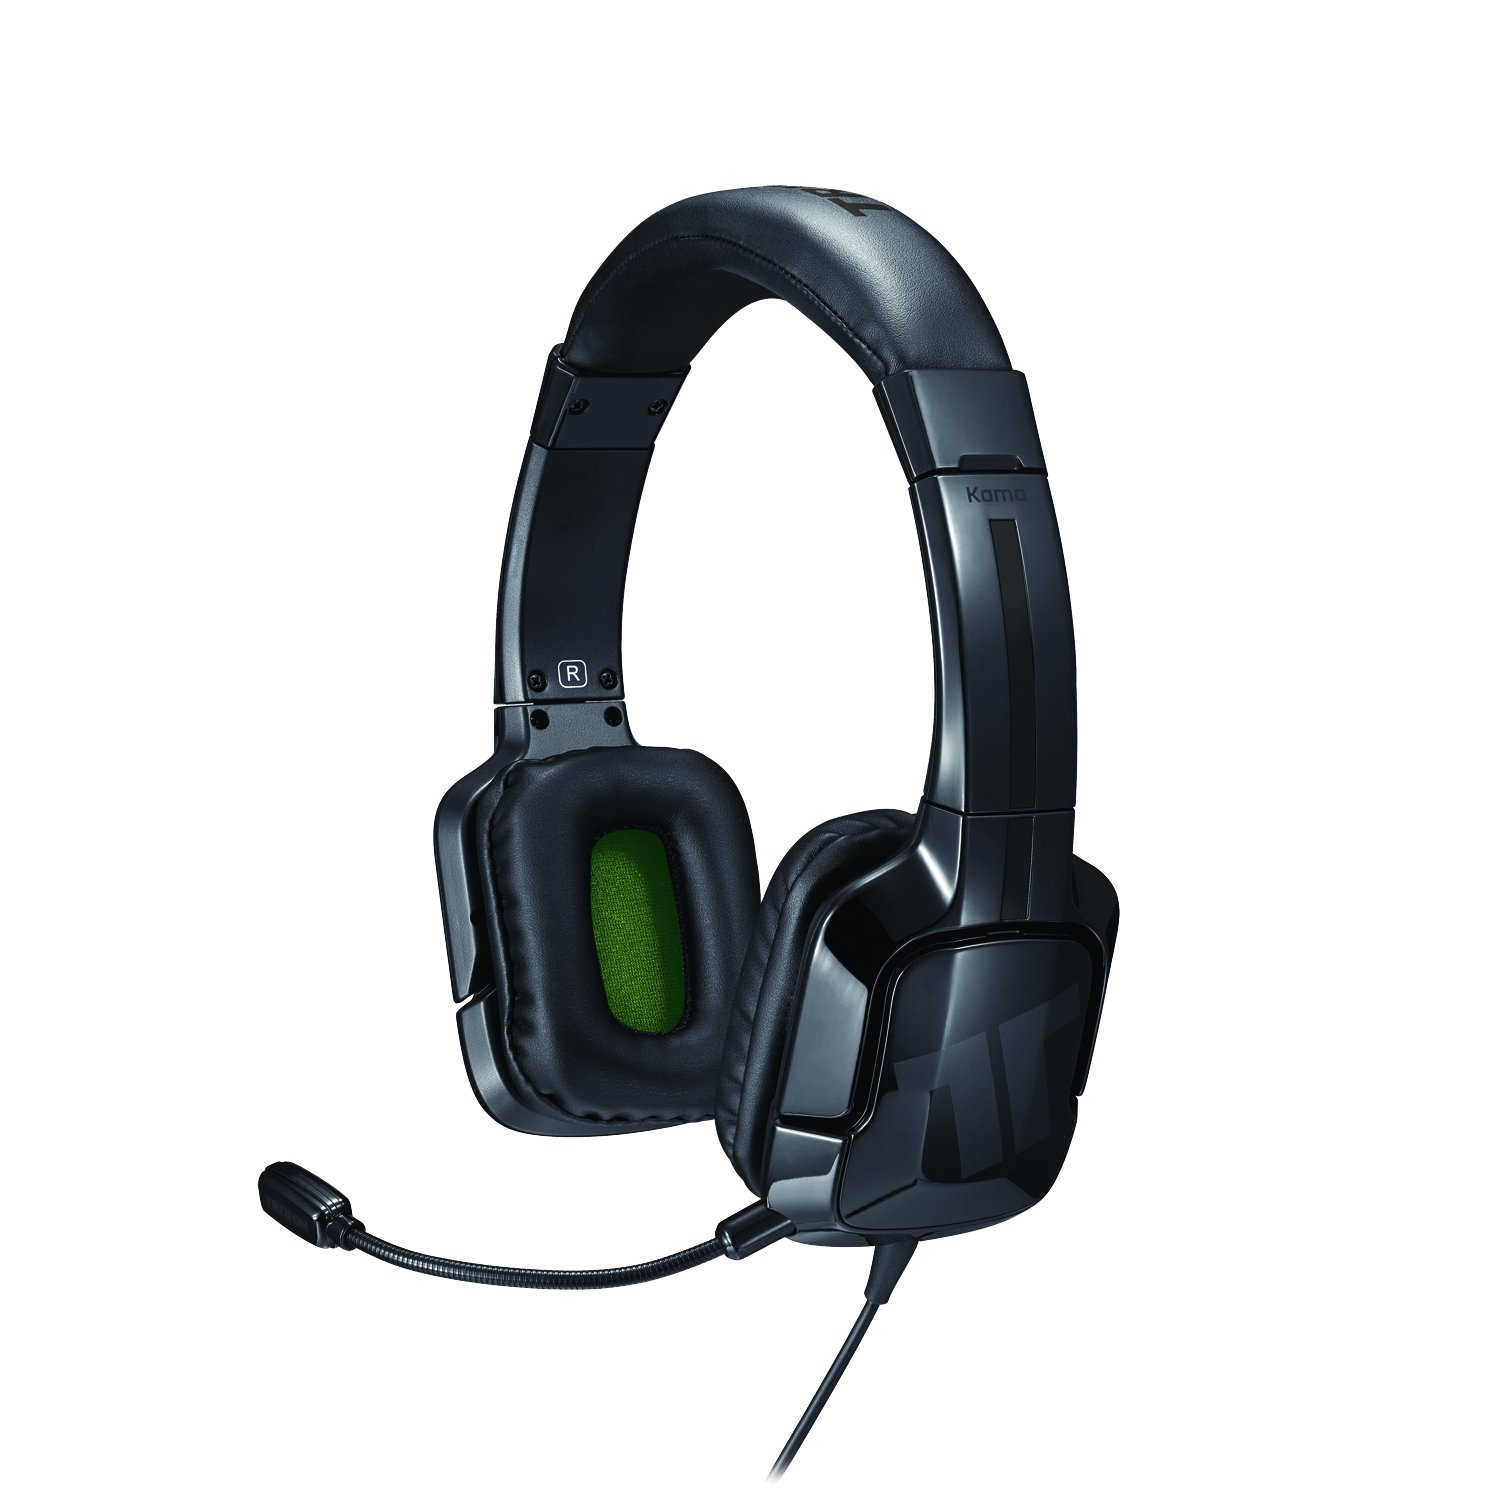 Tritton Xbox One Kama Headset - Black